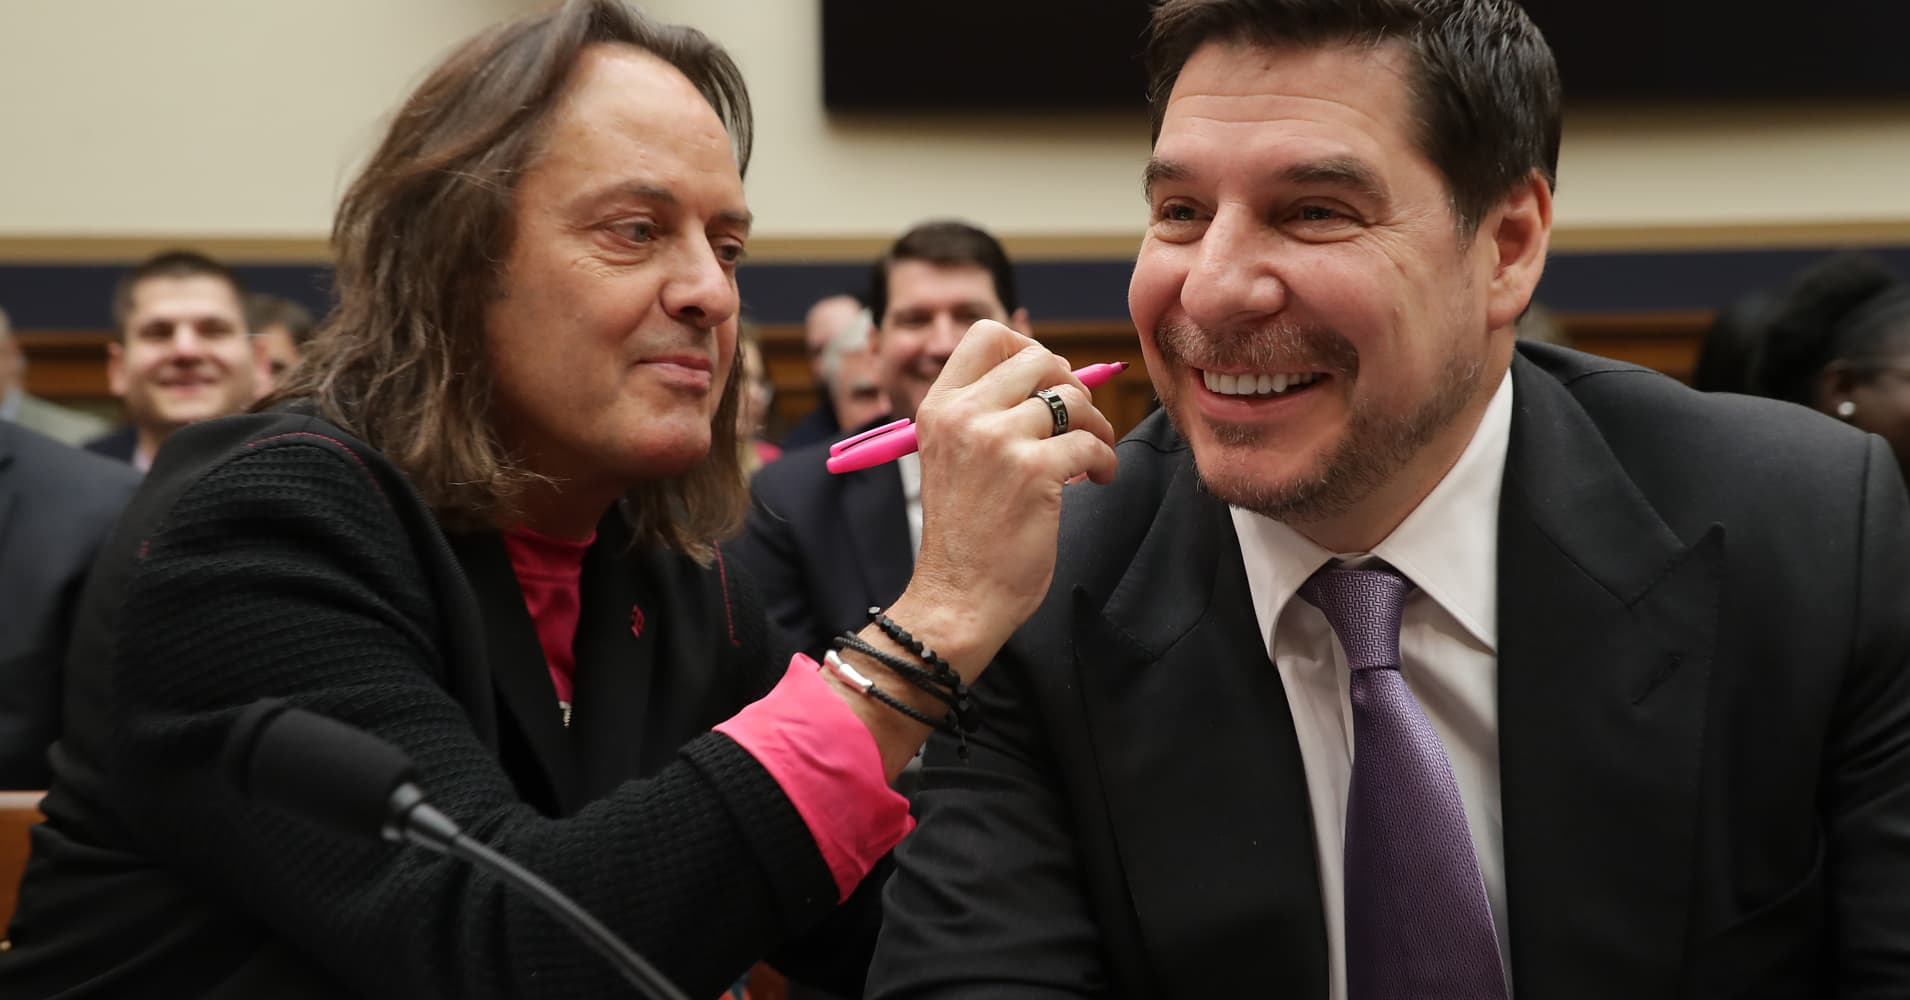 If US wants to be leader in 5G, it should approve Sprint, T-Mobile merger: Analyst